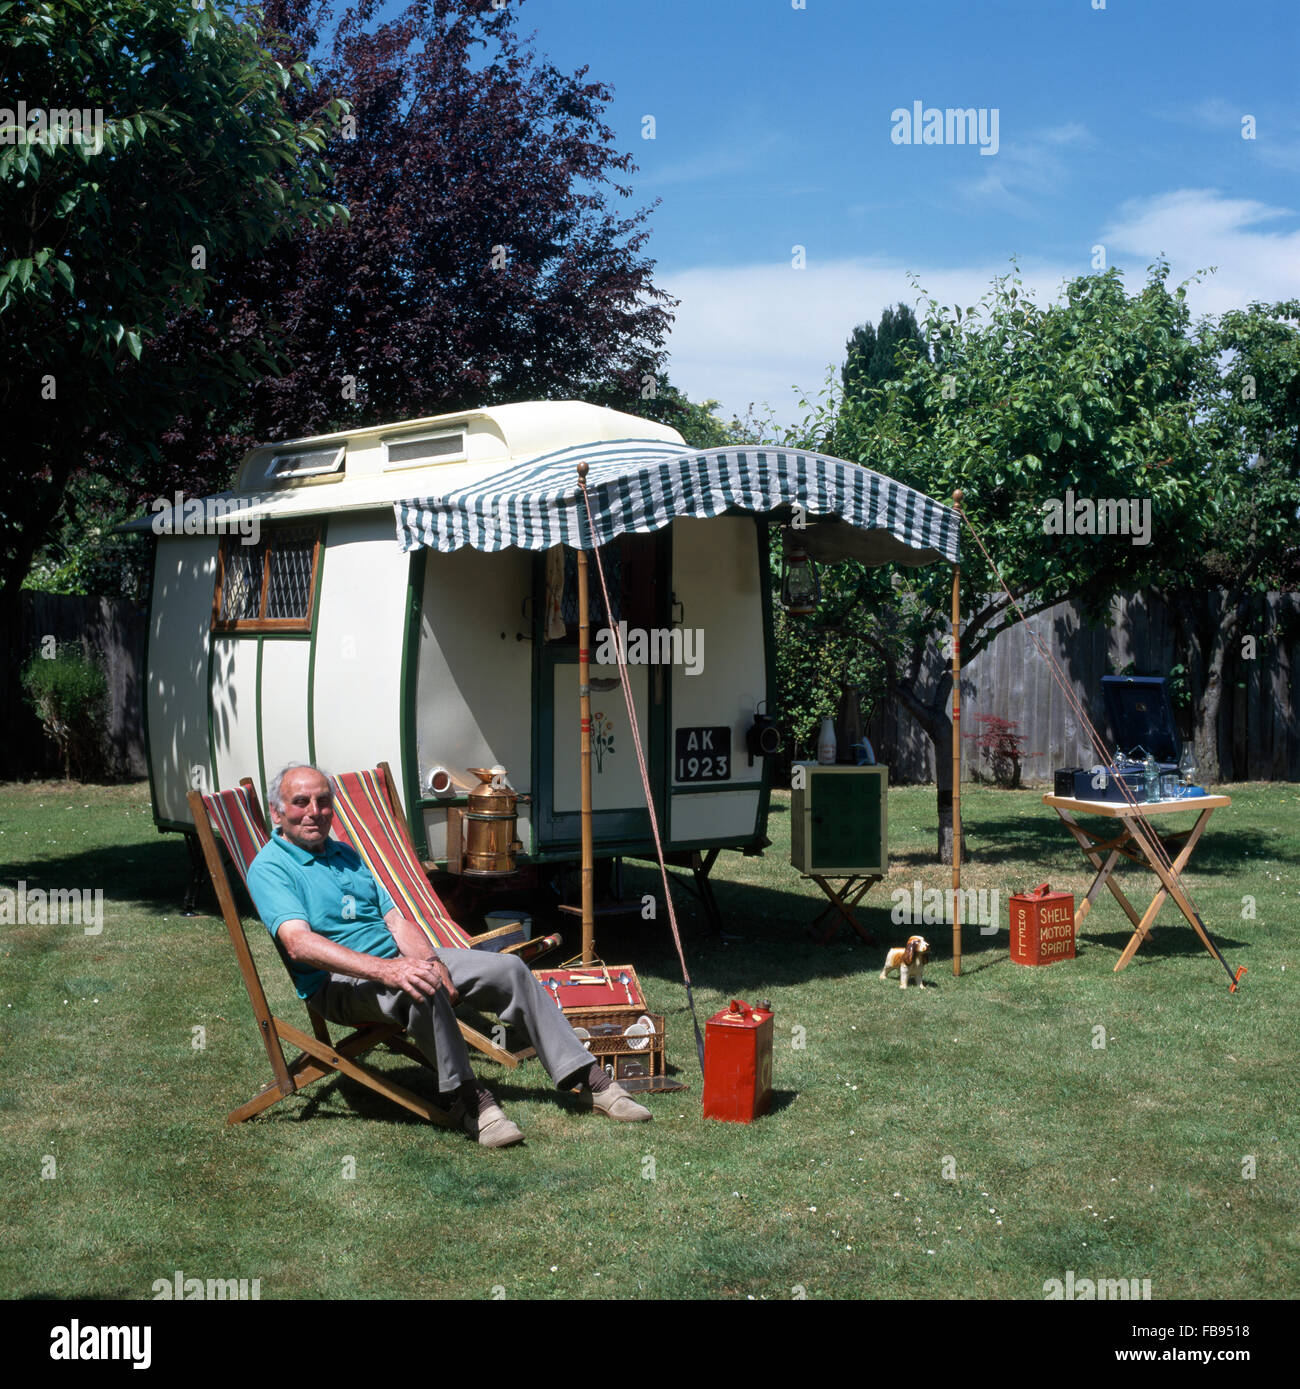 Portrait of man relaxing in old deckchair beside fifties caravan with striped awning         FOR EDITORIAL USE ONLY - Stock Image